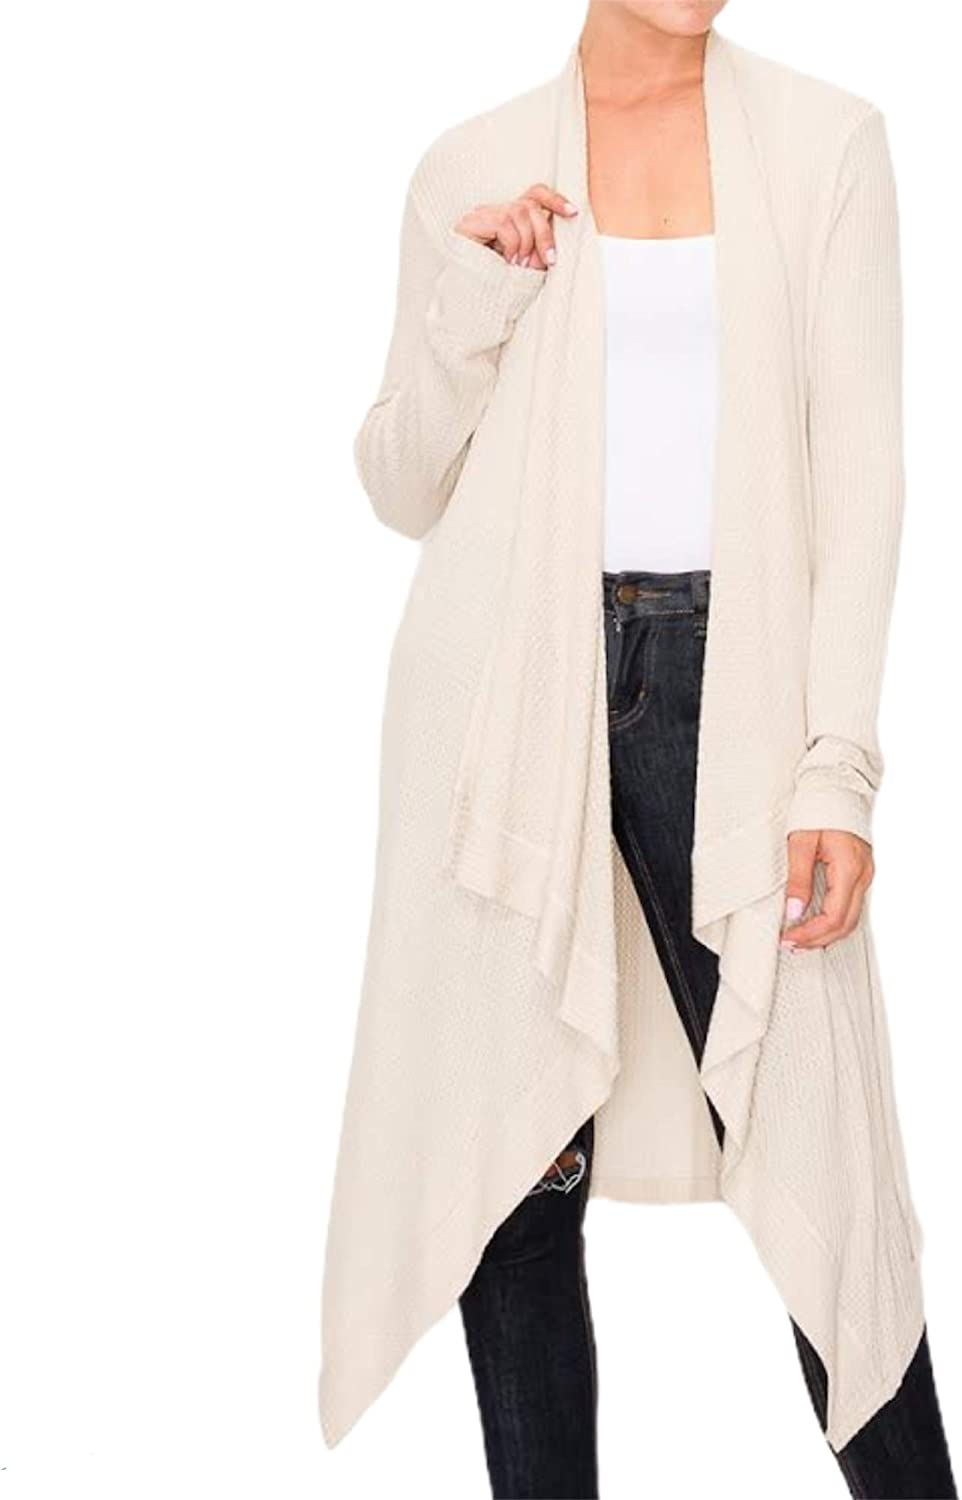 Cascade Front Knit Duster Cardigan is Made from a Super Soft and Stretchy Rayon Waffle Fabrication